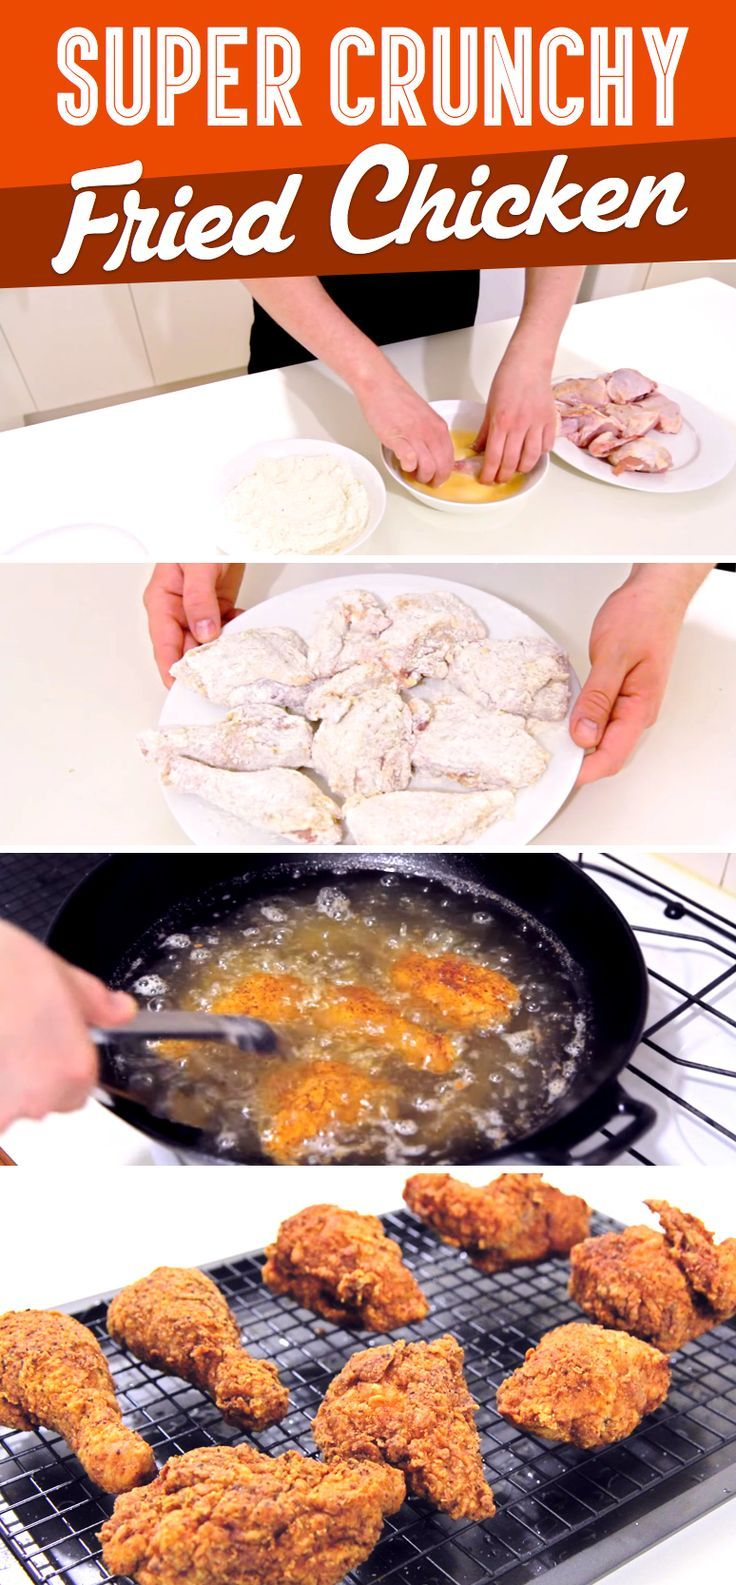 25 best ideas about fried chicken on pinterest for Good fried fish near me